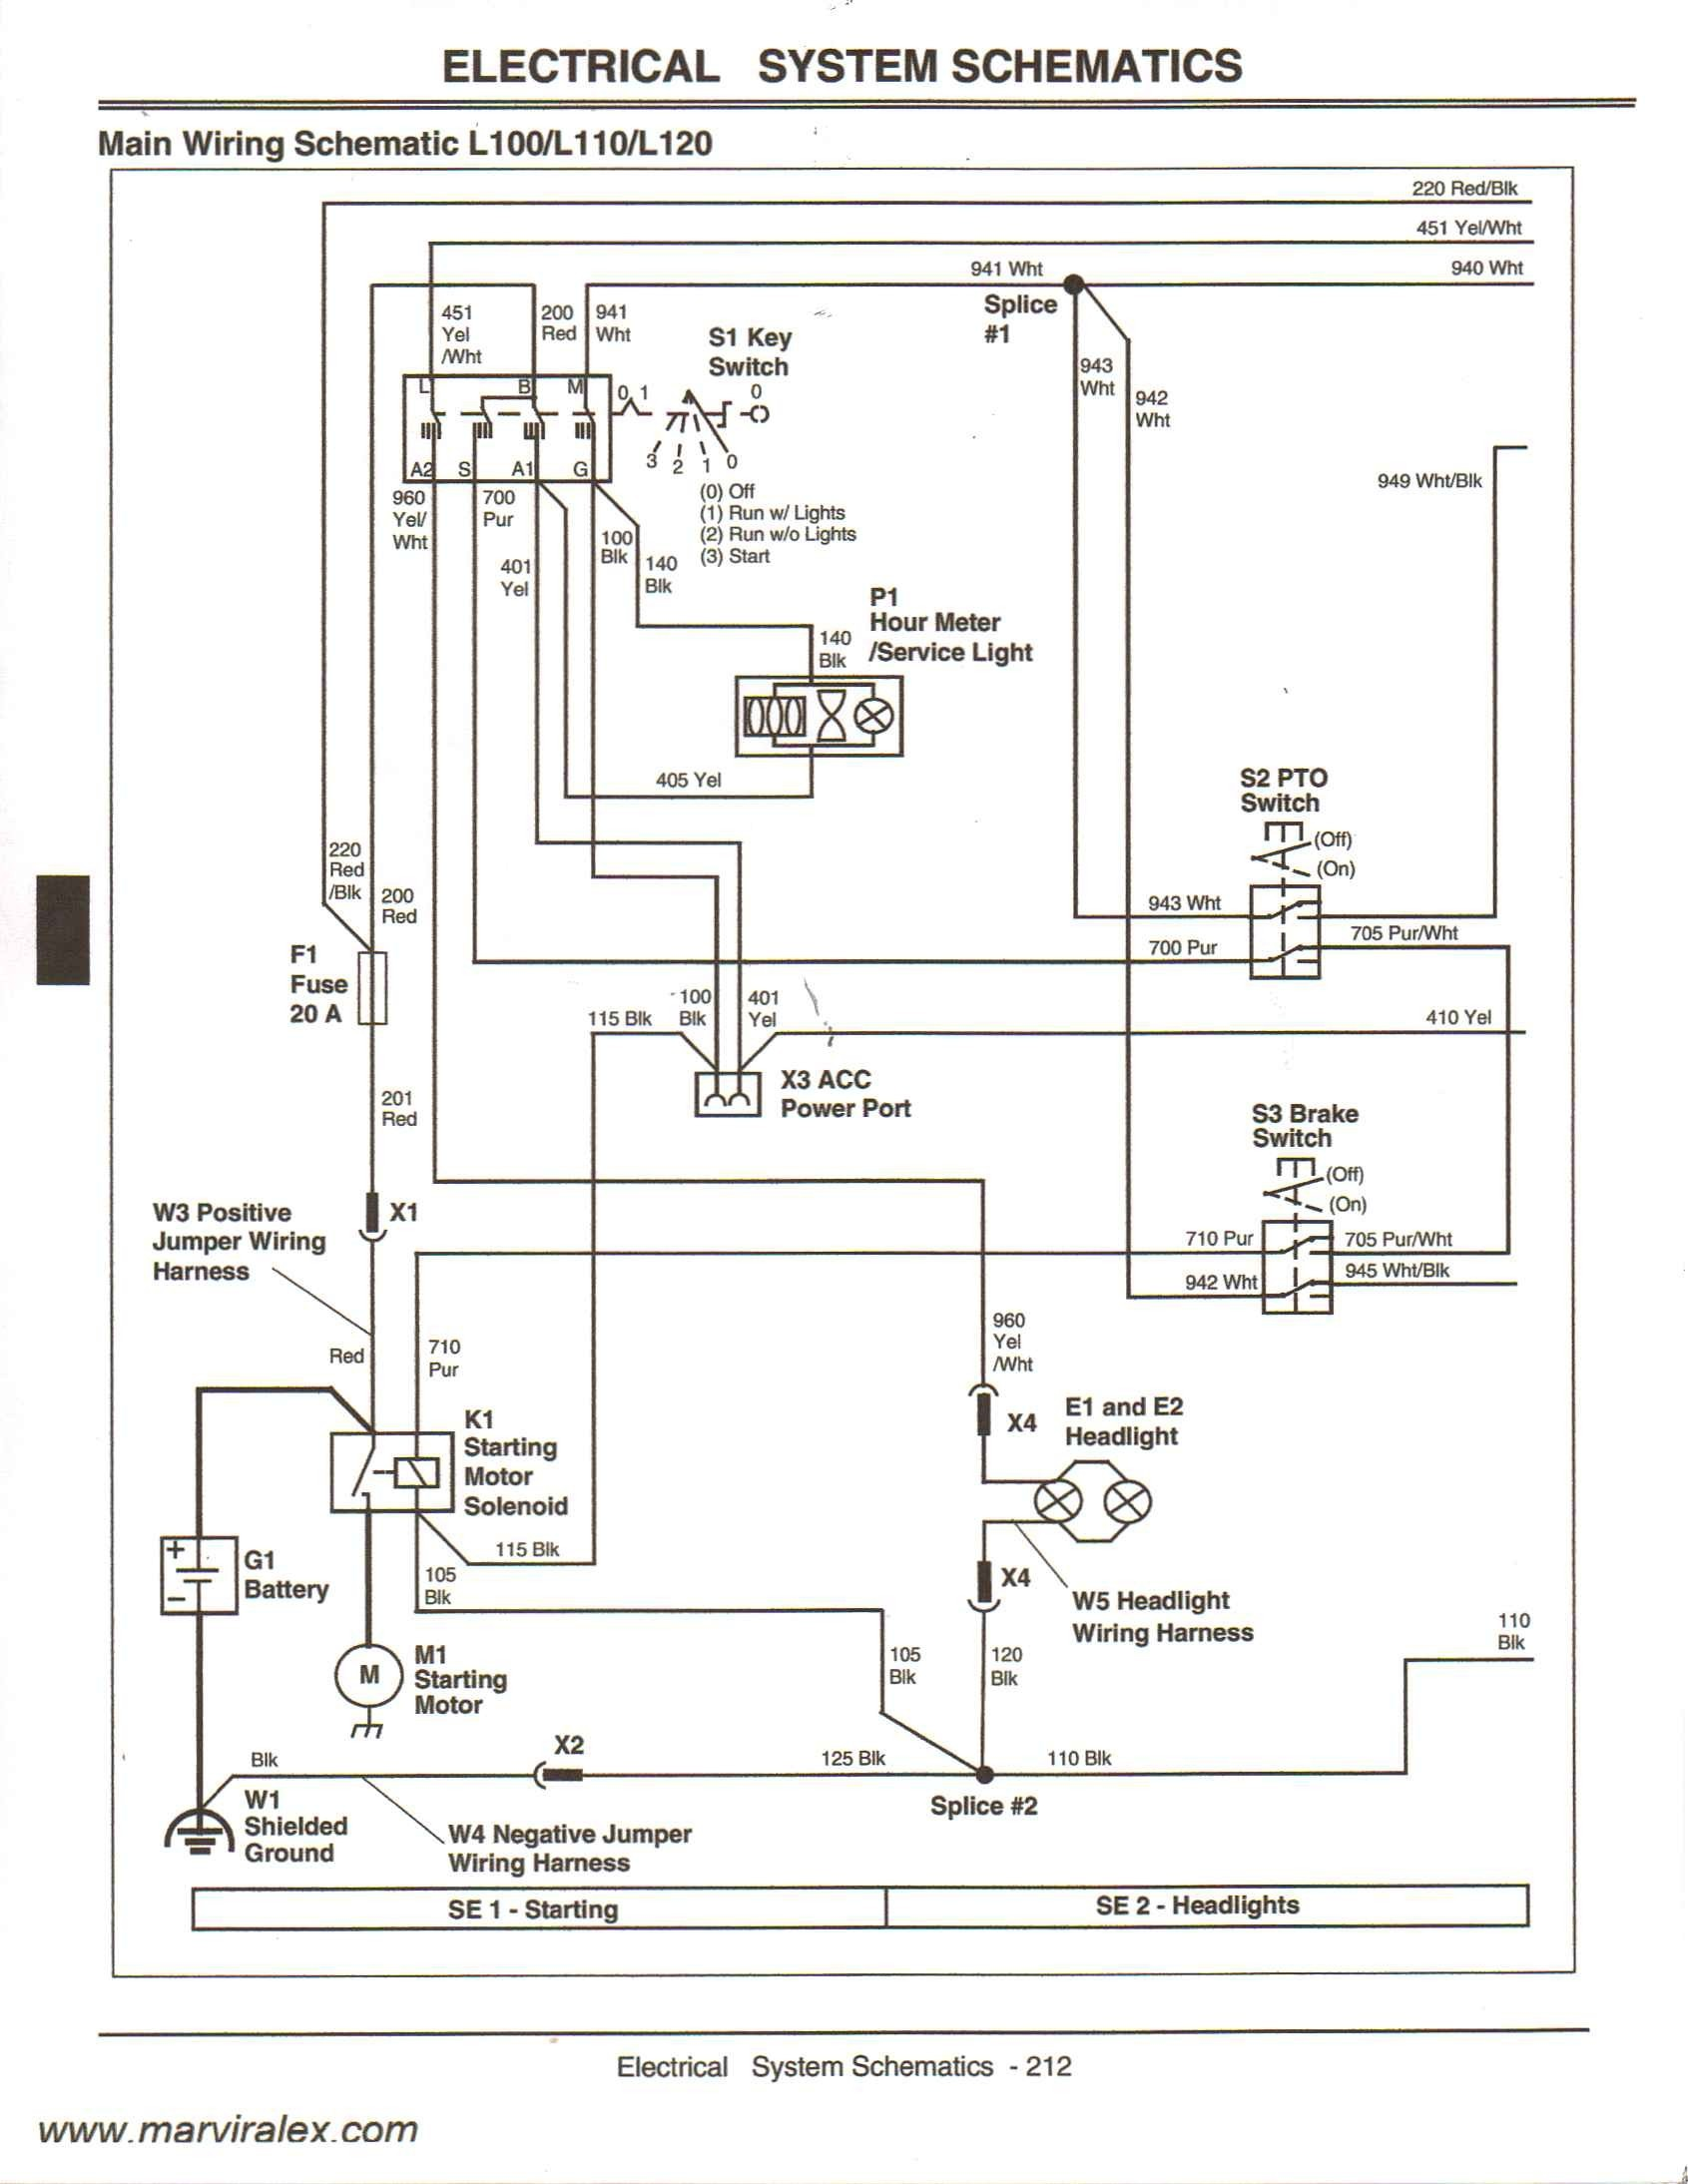 John deere wiring diagram my